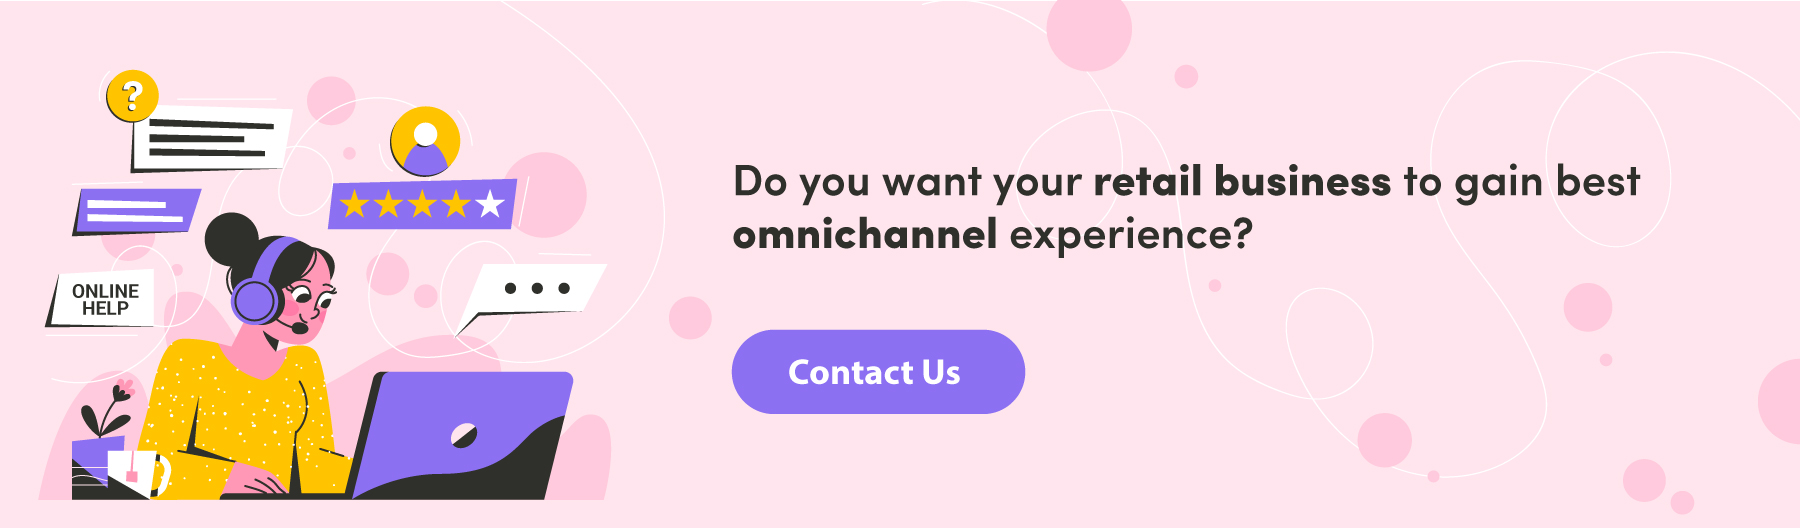 Contact for Improve omnichannel experience of Retail business